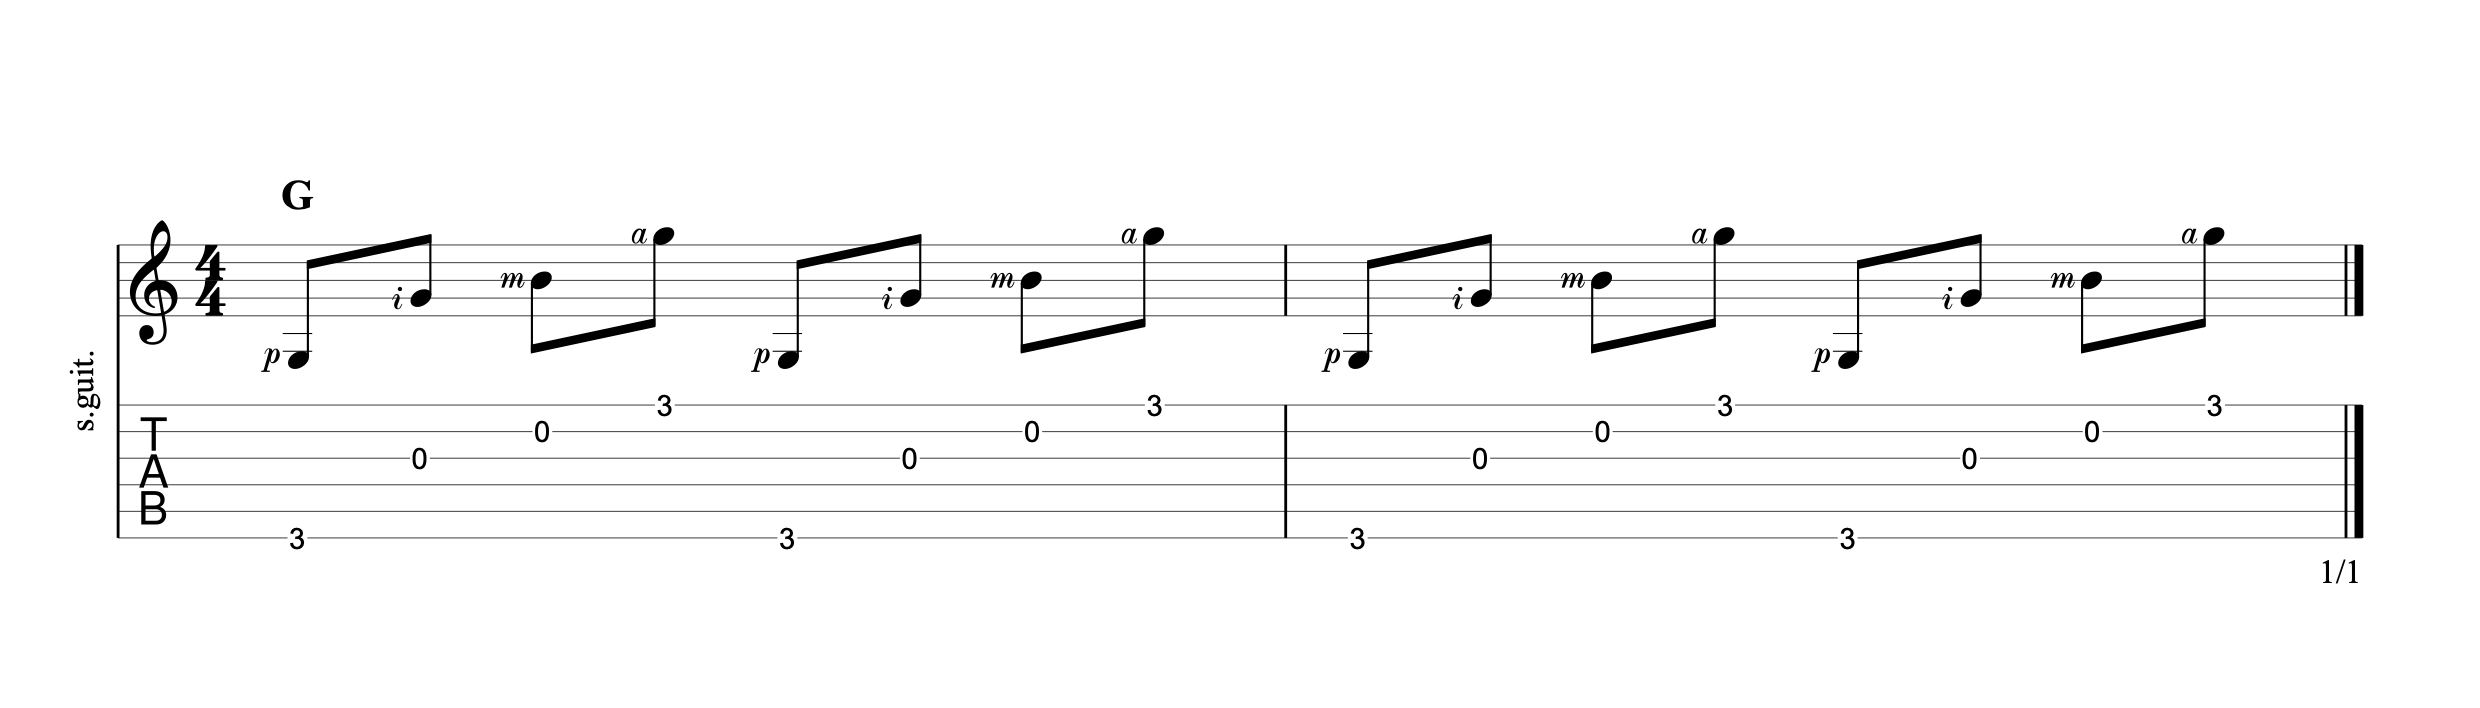 Fingerpicking Chords p3